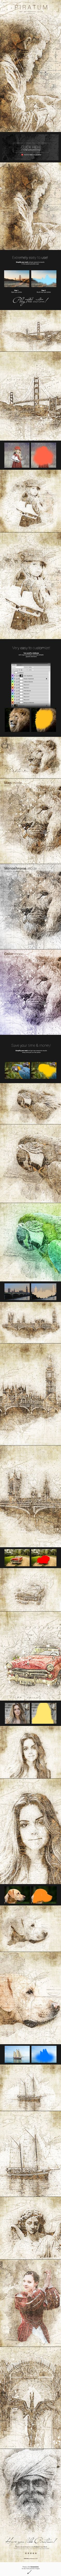 Piratum Map Art Photoshop Action — Photoshop ABR #design #acrylic